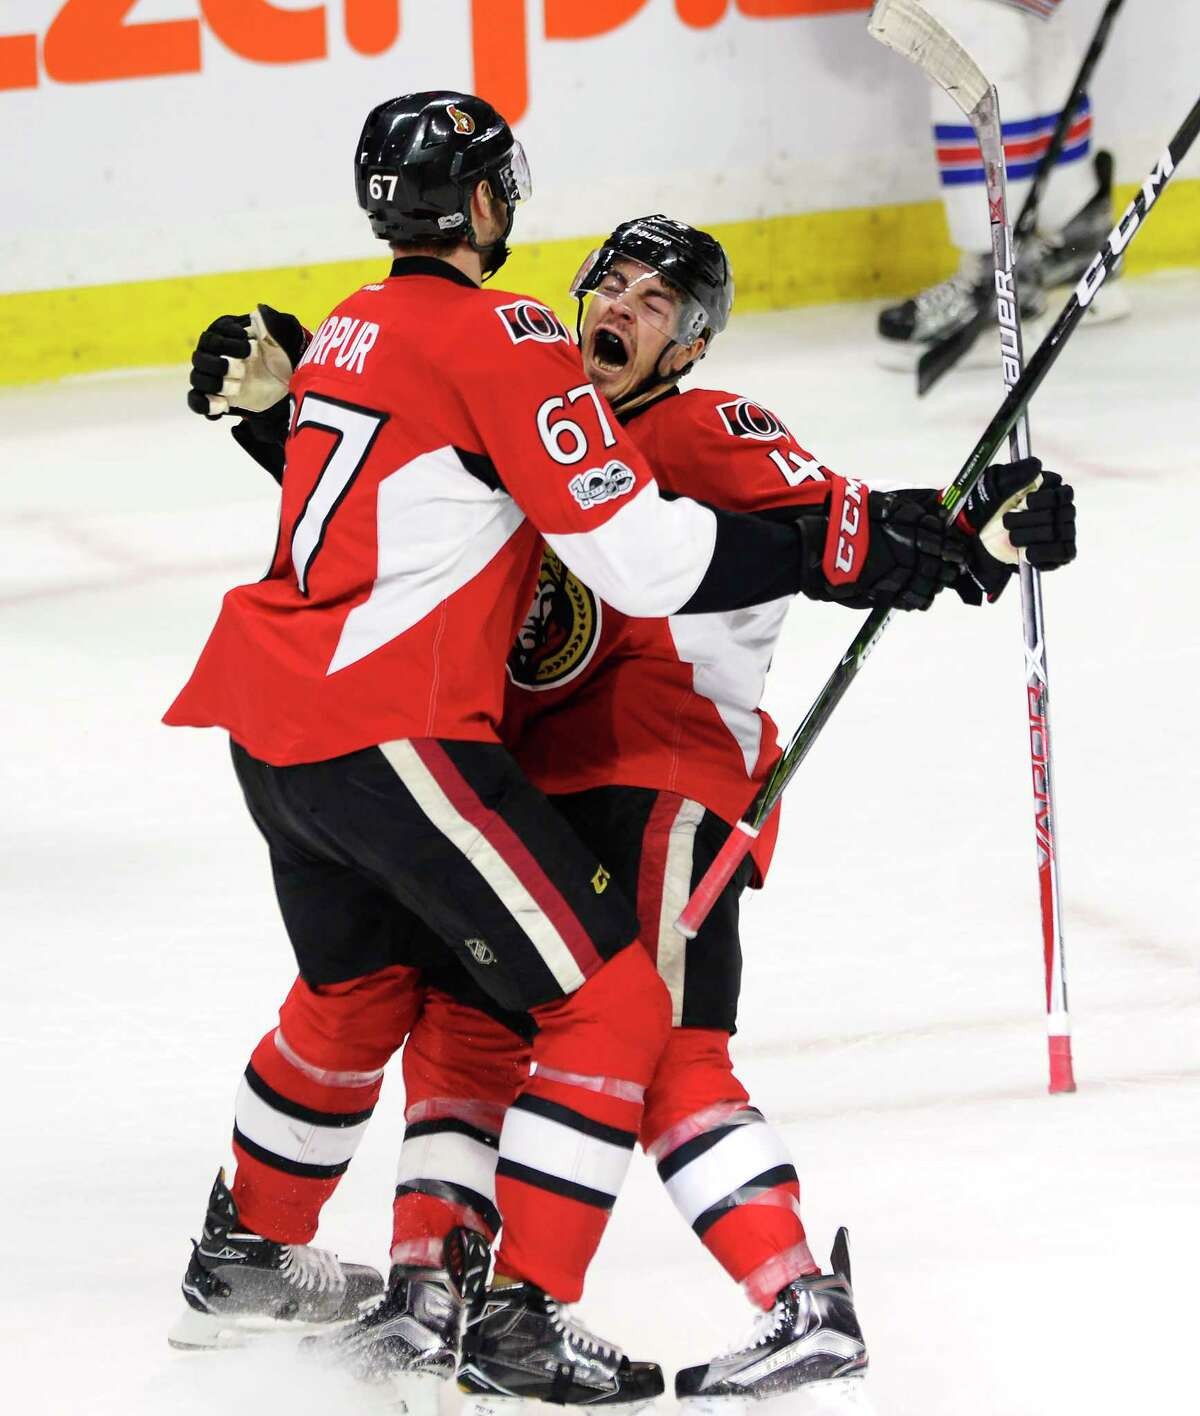 Ottawa Senators center Jean-Gabriel Pageau (44) celebrates his goal with defenseman Ben Harpur (67)during the first period in Game 2 against the New York Rangers in the second-round of the NHL hockey Stanley Cup playoffs Saturday, April 29, 2017, in Ottawa. (Adrian Wyld/The Canadian Press via AP) ORG XMIT: JFJ506